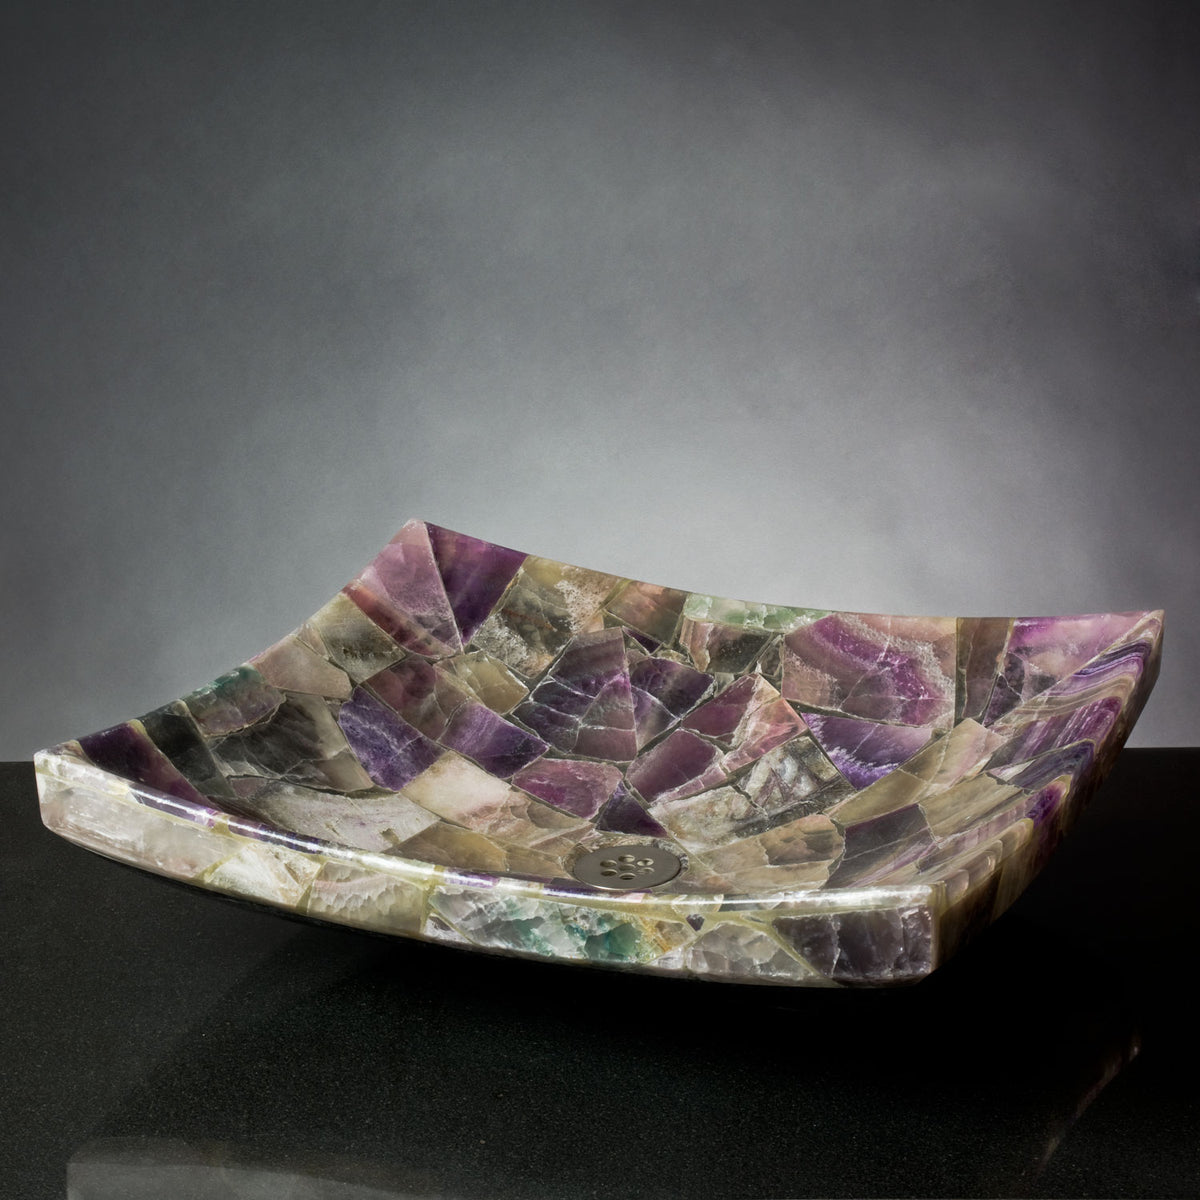 Purple Onyx Mosaic Zen Vessel